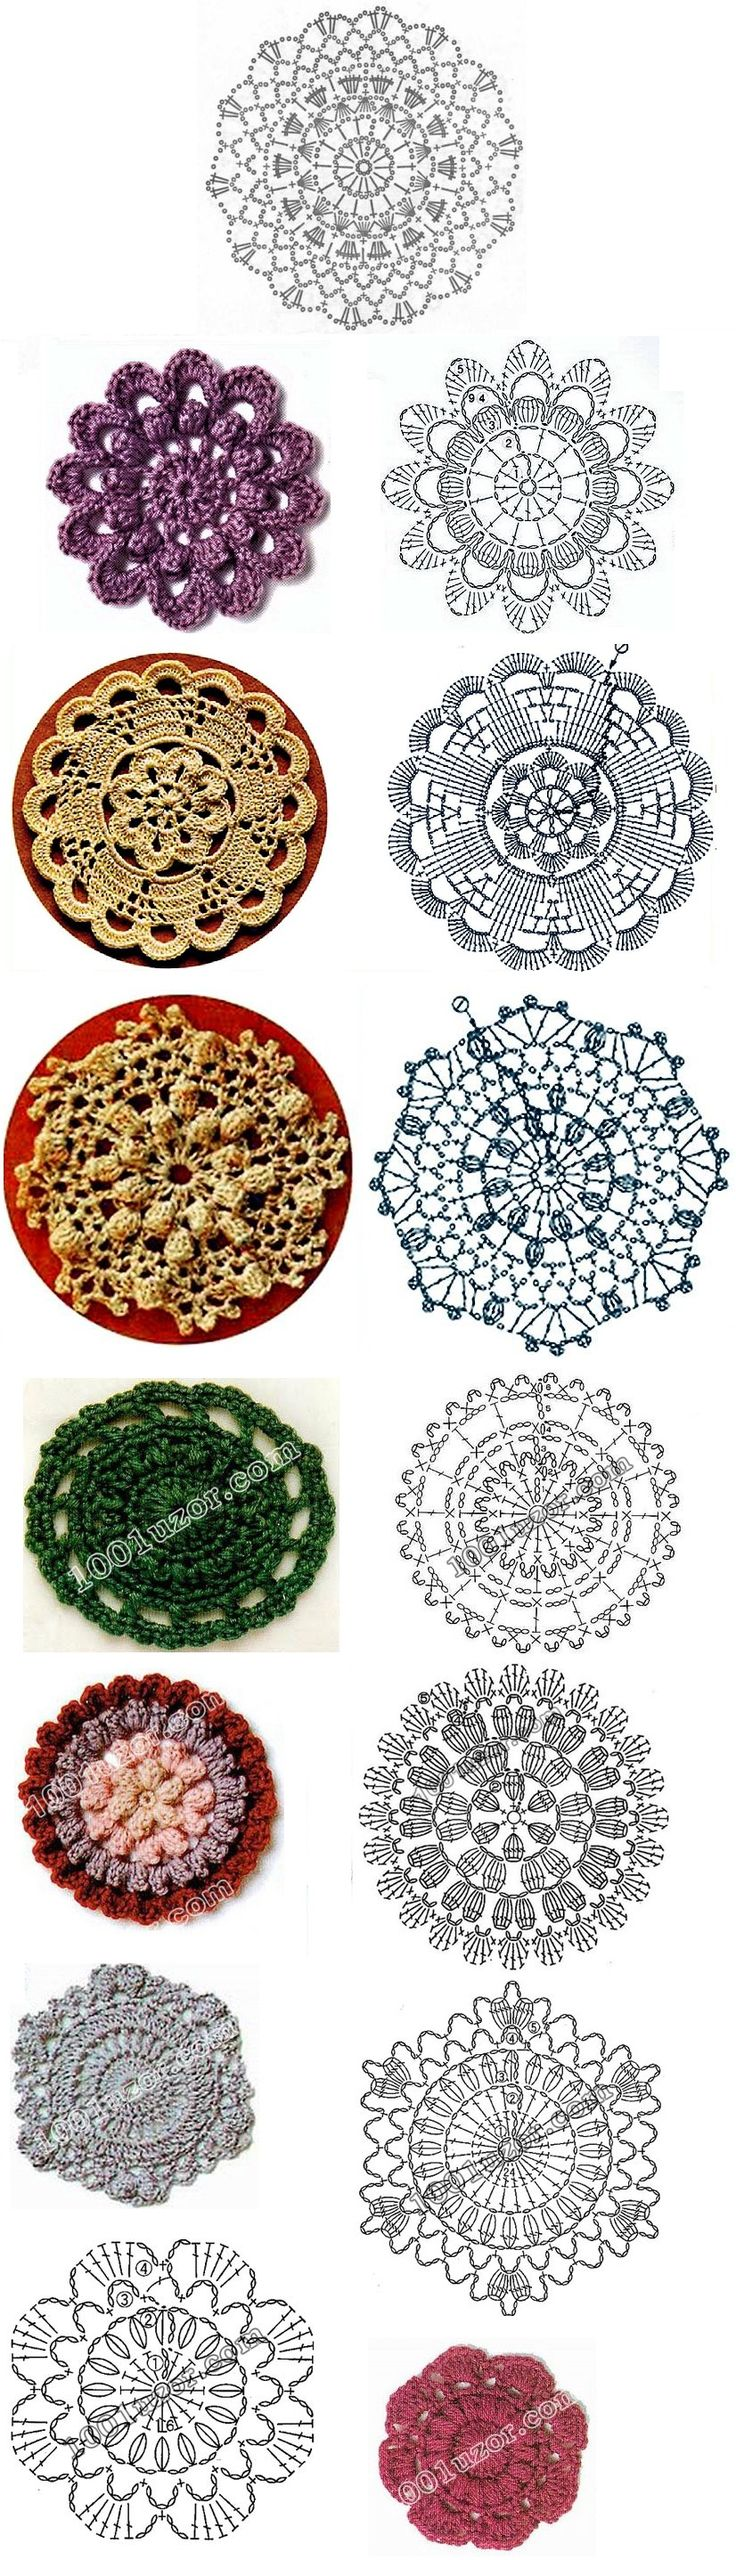 Beautiful crochet motifs!                                                                                                                                                                                 More